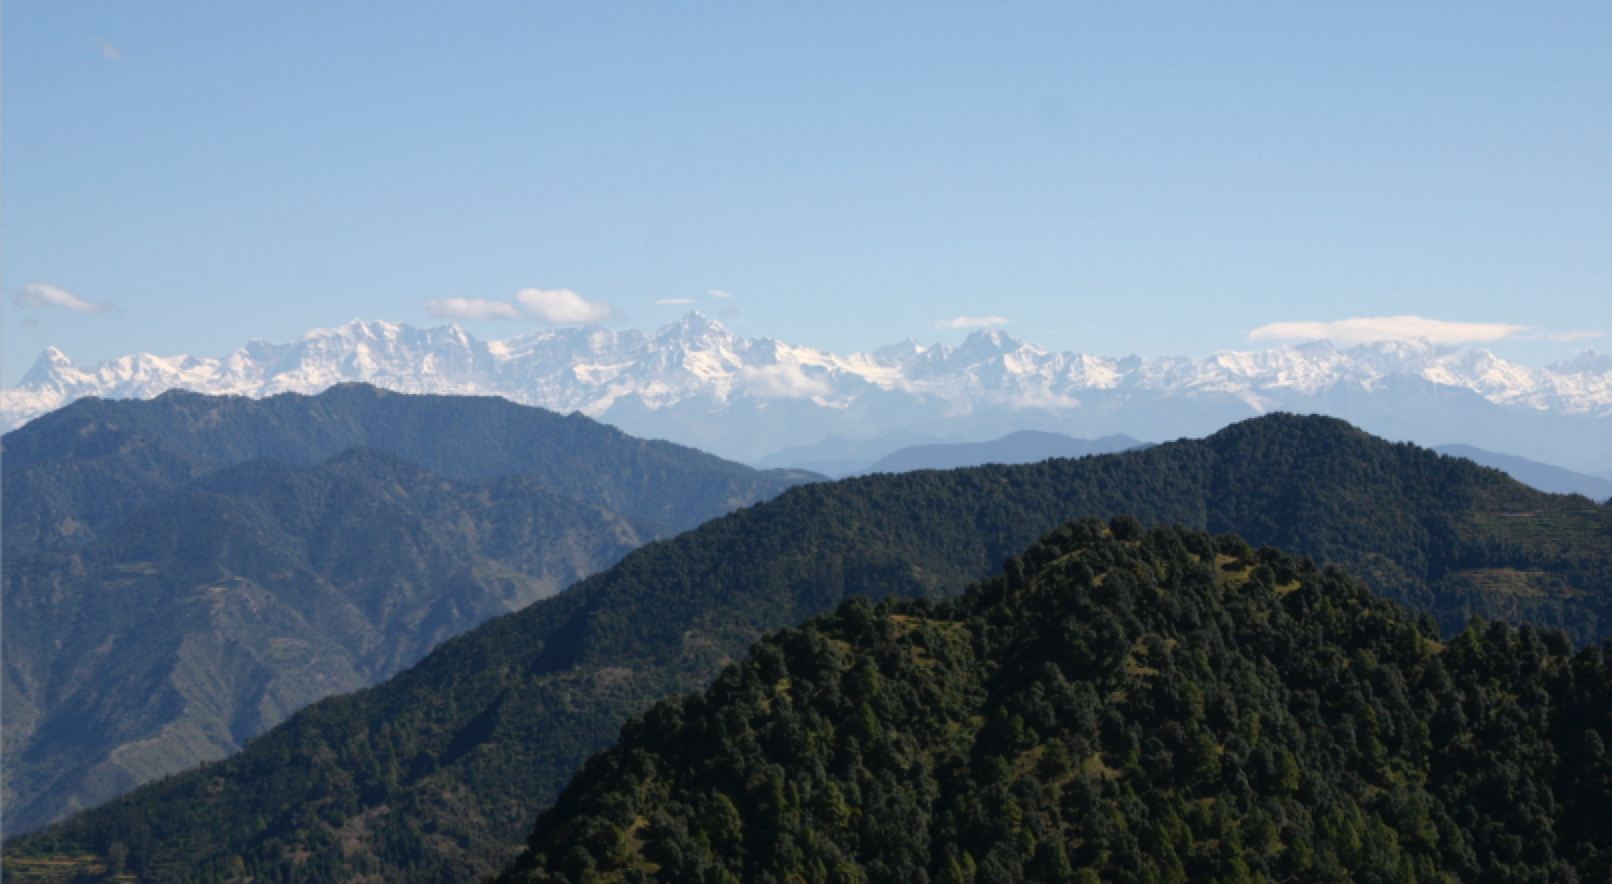 Meena and Dadi's beloved mountains, as seen from Sister's Bazaar. Uttarakhand, India. The foothills of the Himalayas, the youngest and highest mountains in the world.